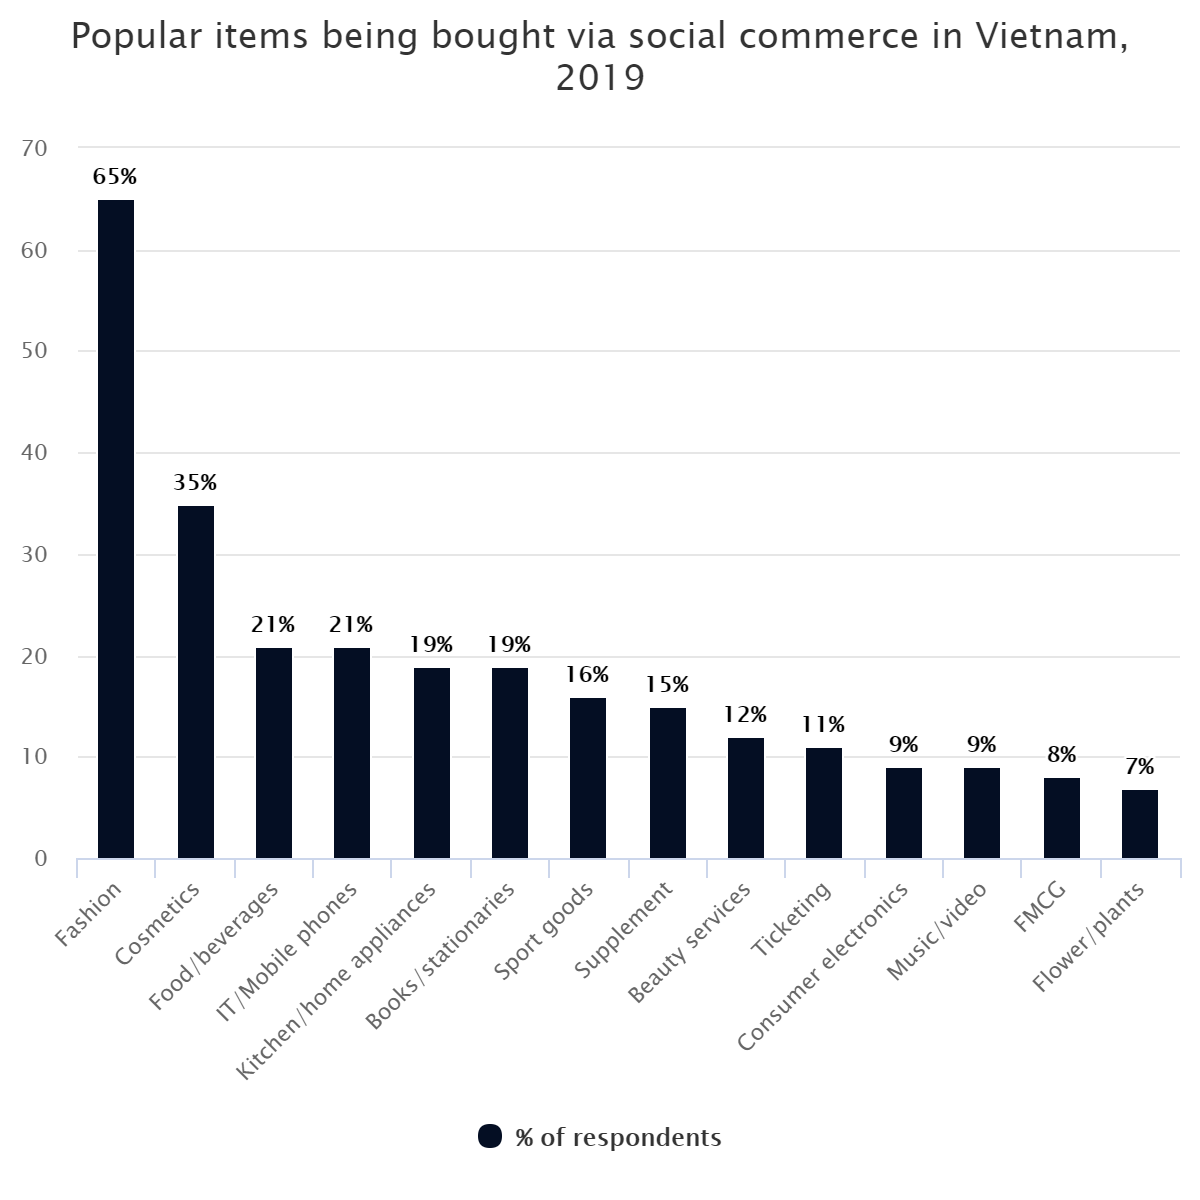 Popular items being bought via social commerce in Vietnam, 2019